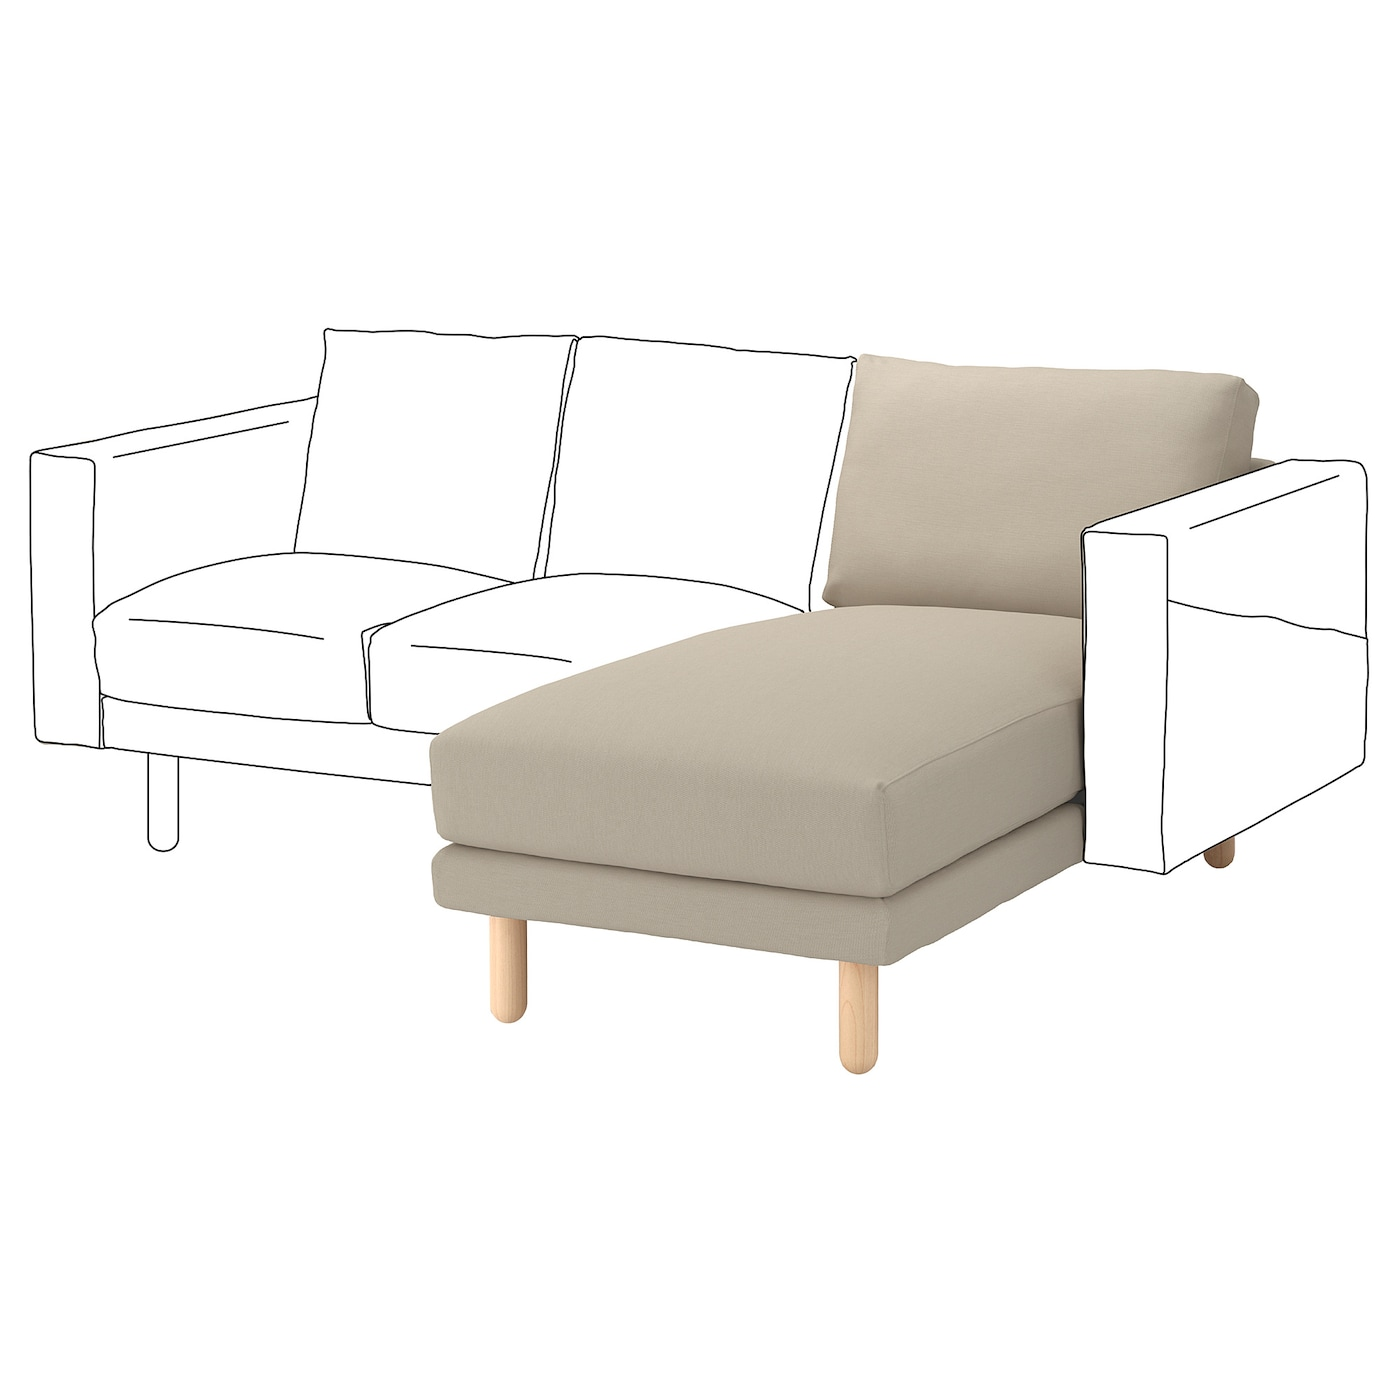 IKEA NORSBORG chaise longue element